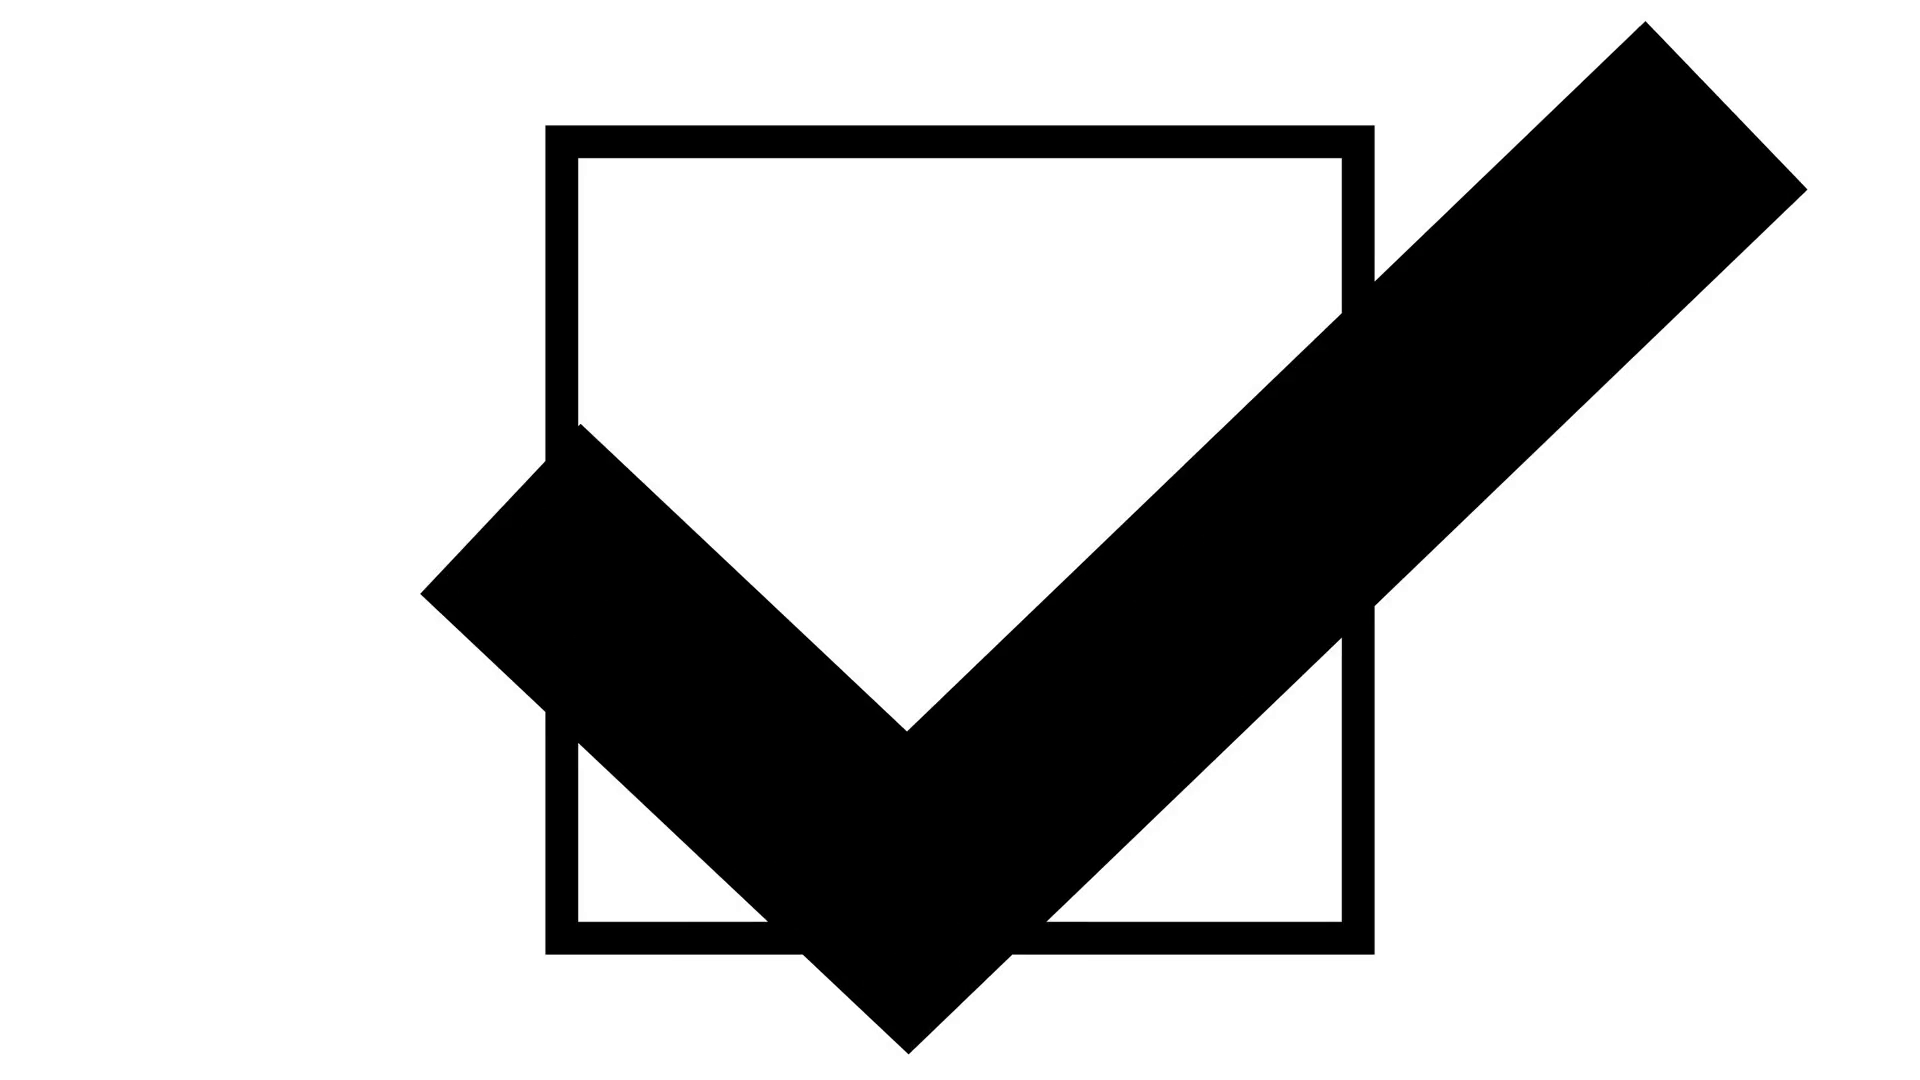 Checkmark clipart voting.